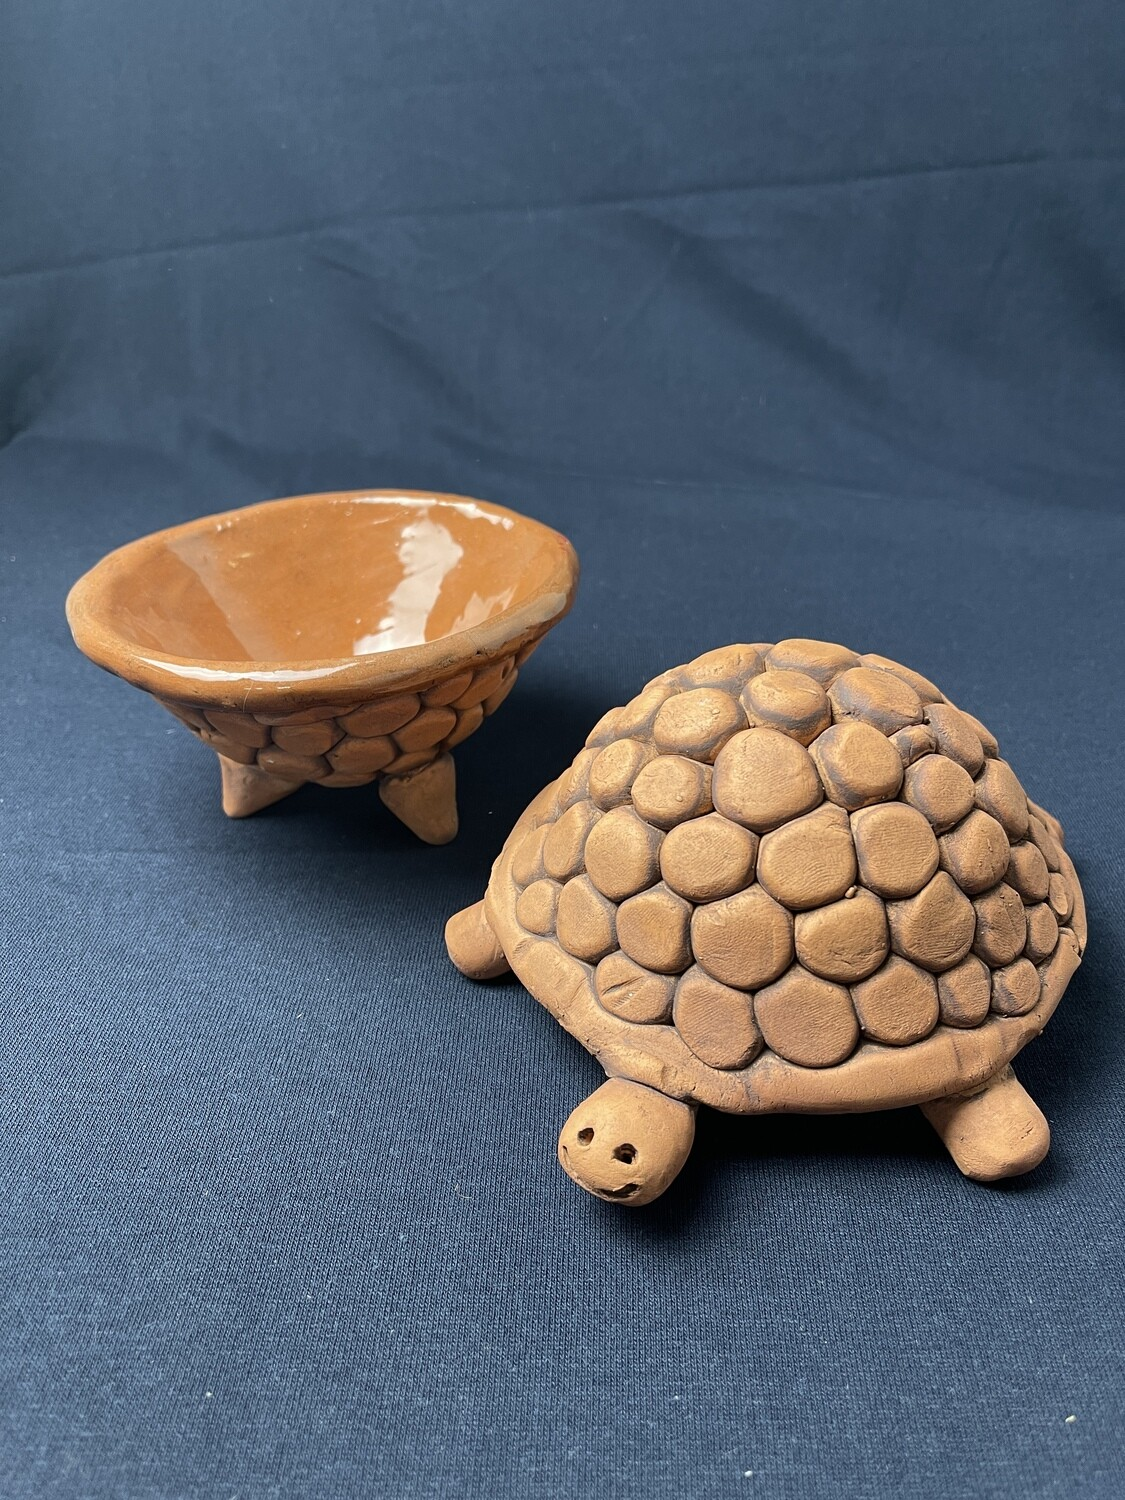 Clay Turtle/Ballie Ball Workshop 16th May 10-12pm